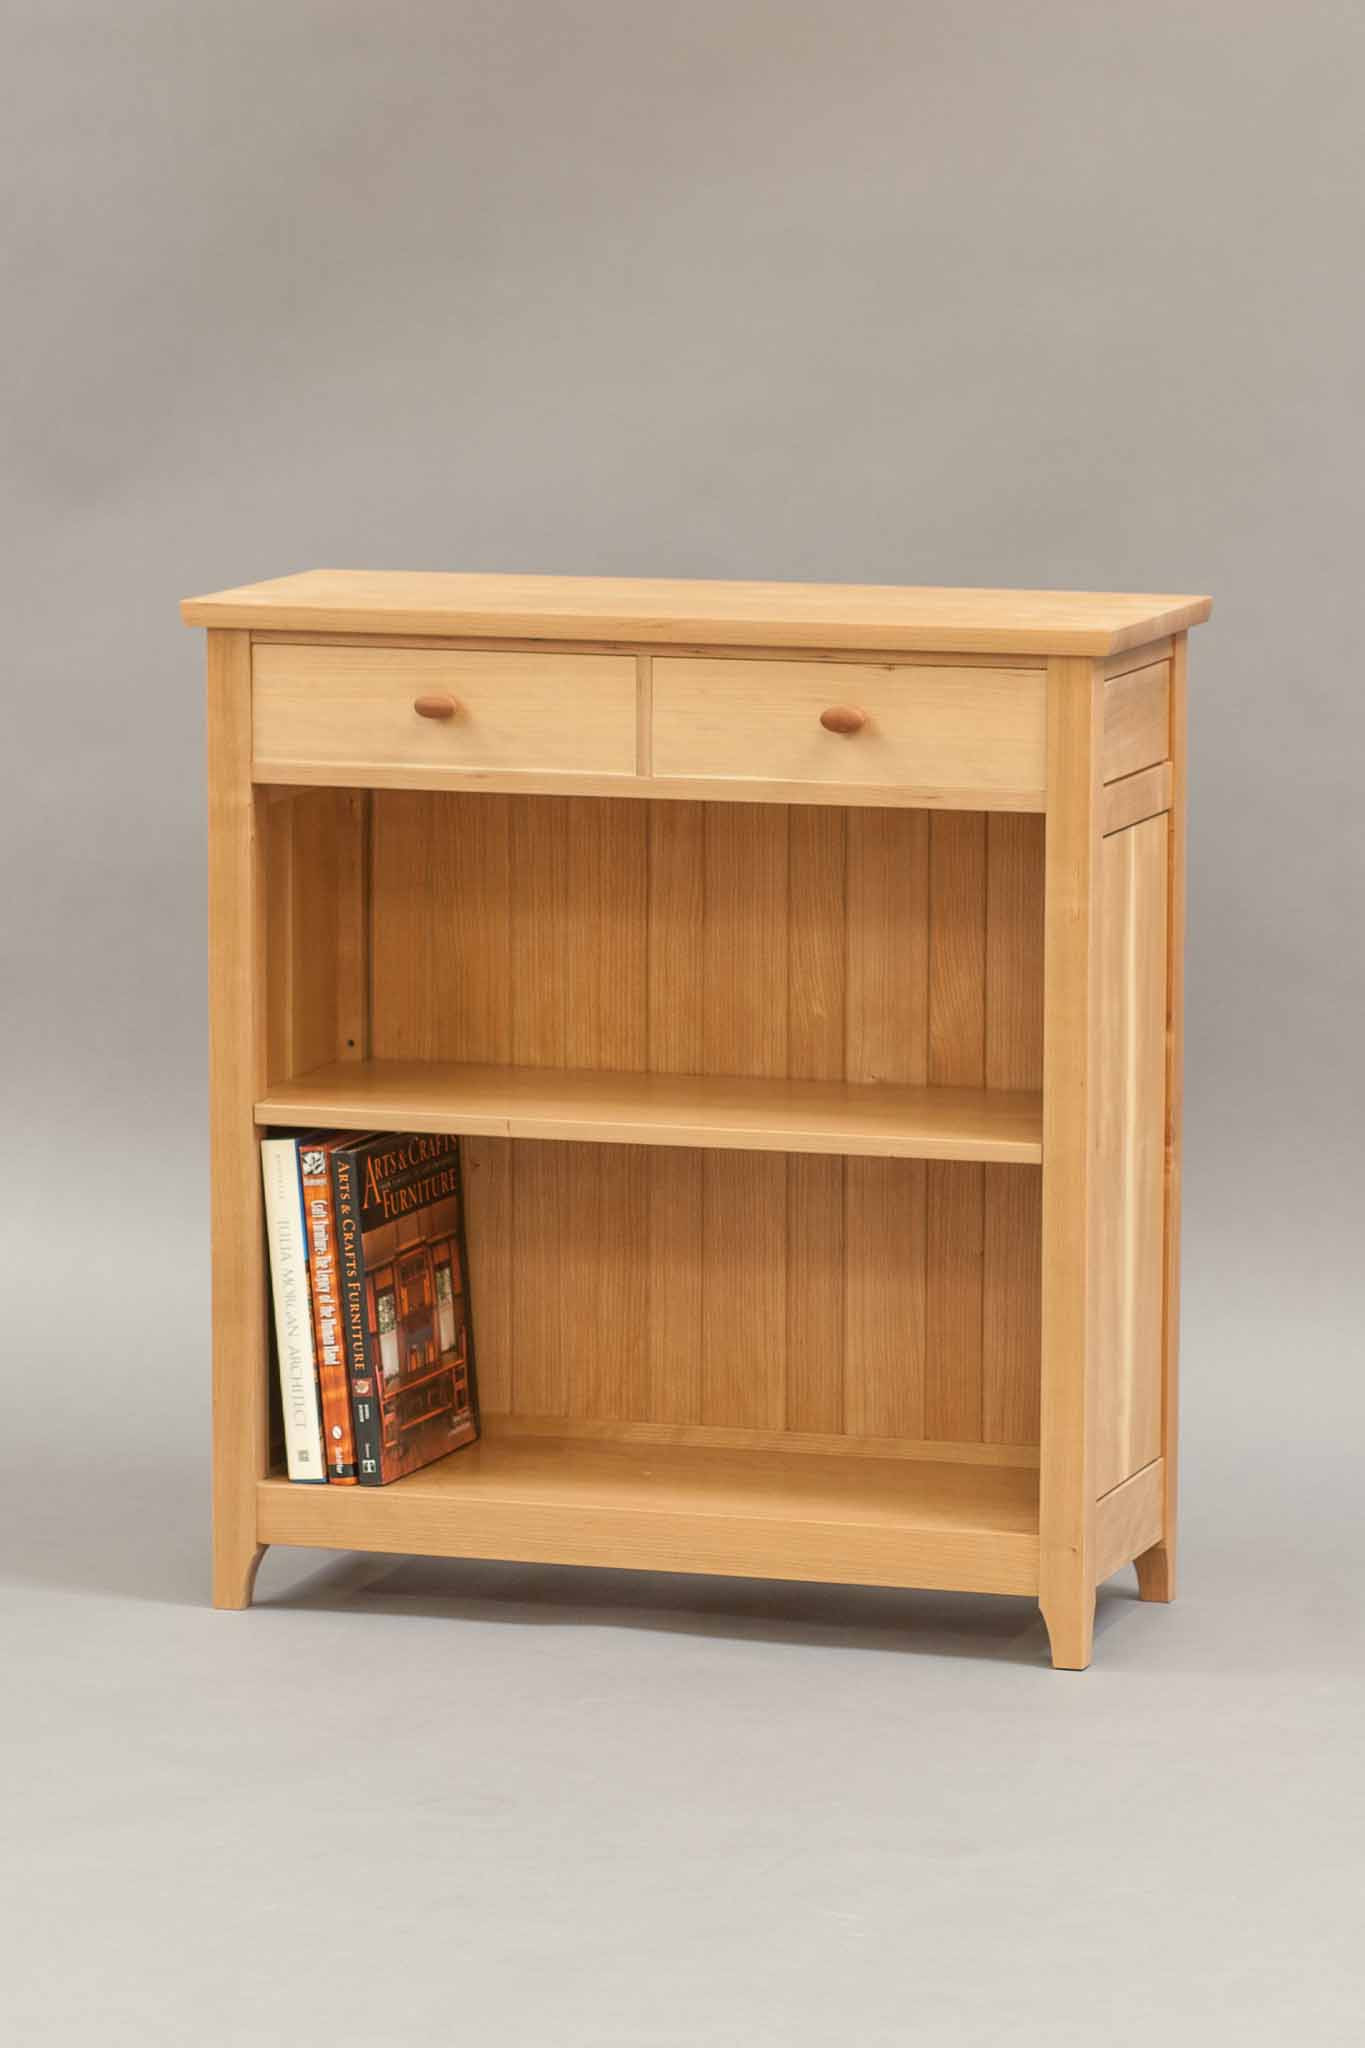 Bookcase with drawers the krenov school of fine furniture for Bookshelf with drawers